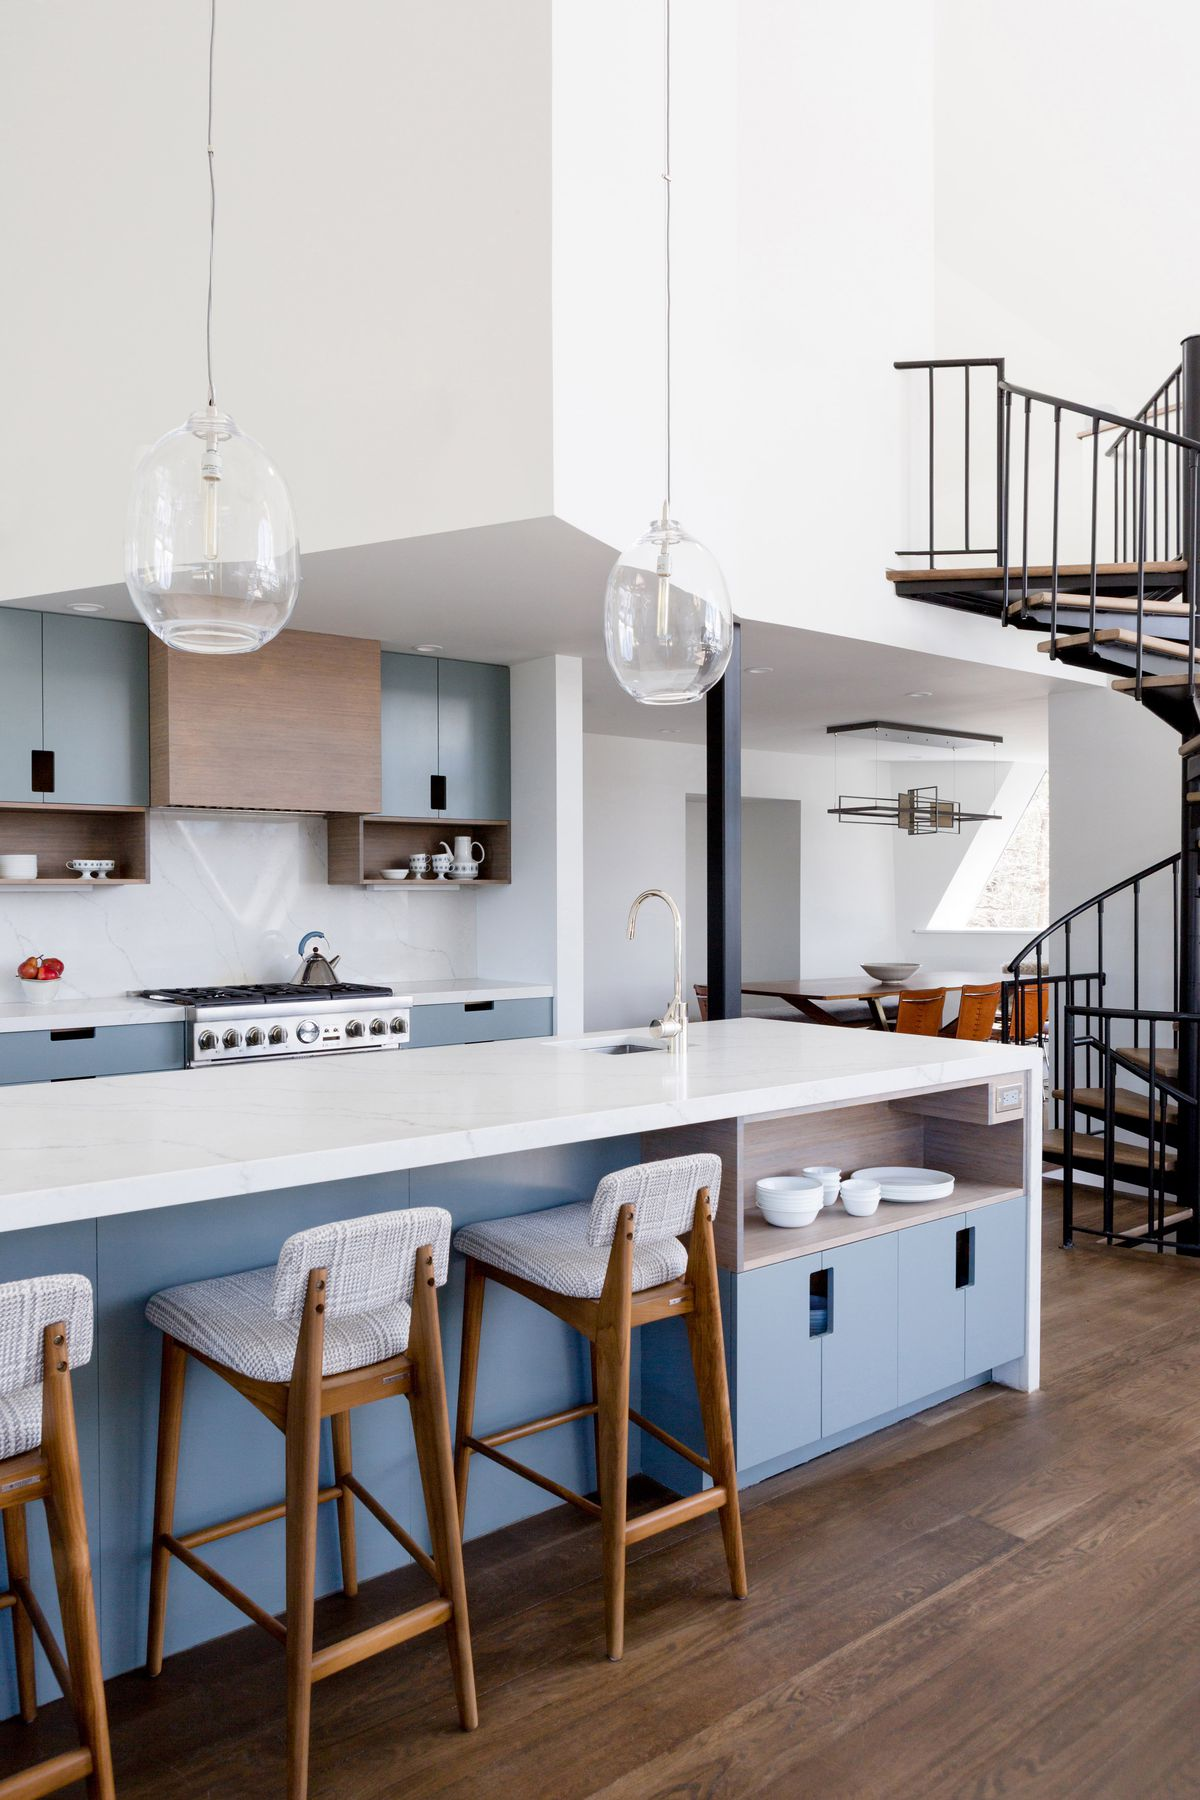 A modern kitchen with white counters and blue cabinets  is under high ceilings and next to a metal spiral staircase.